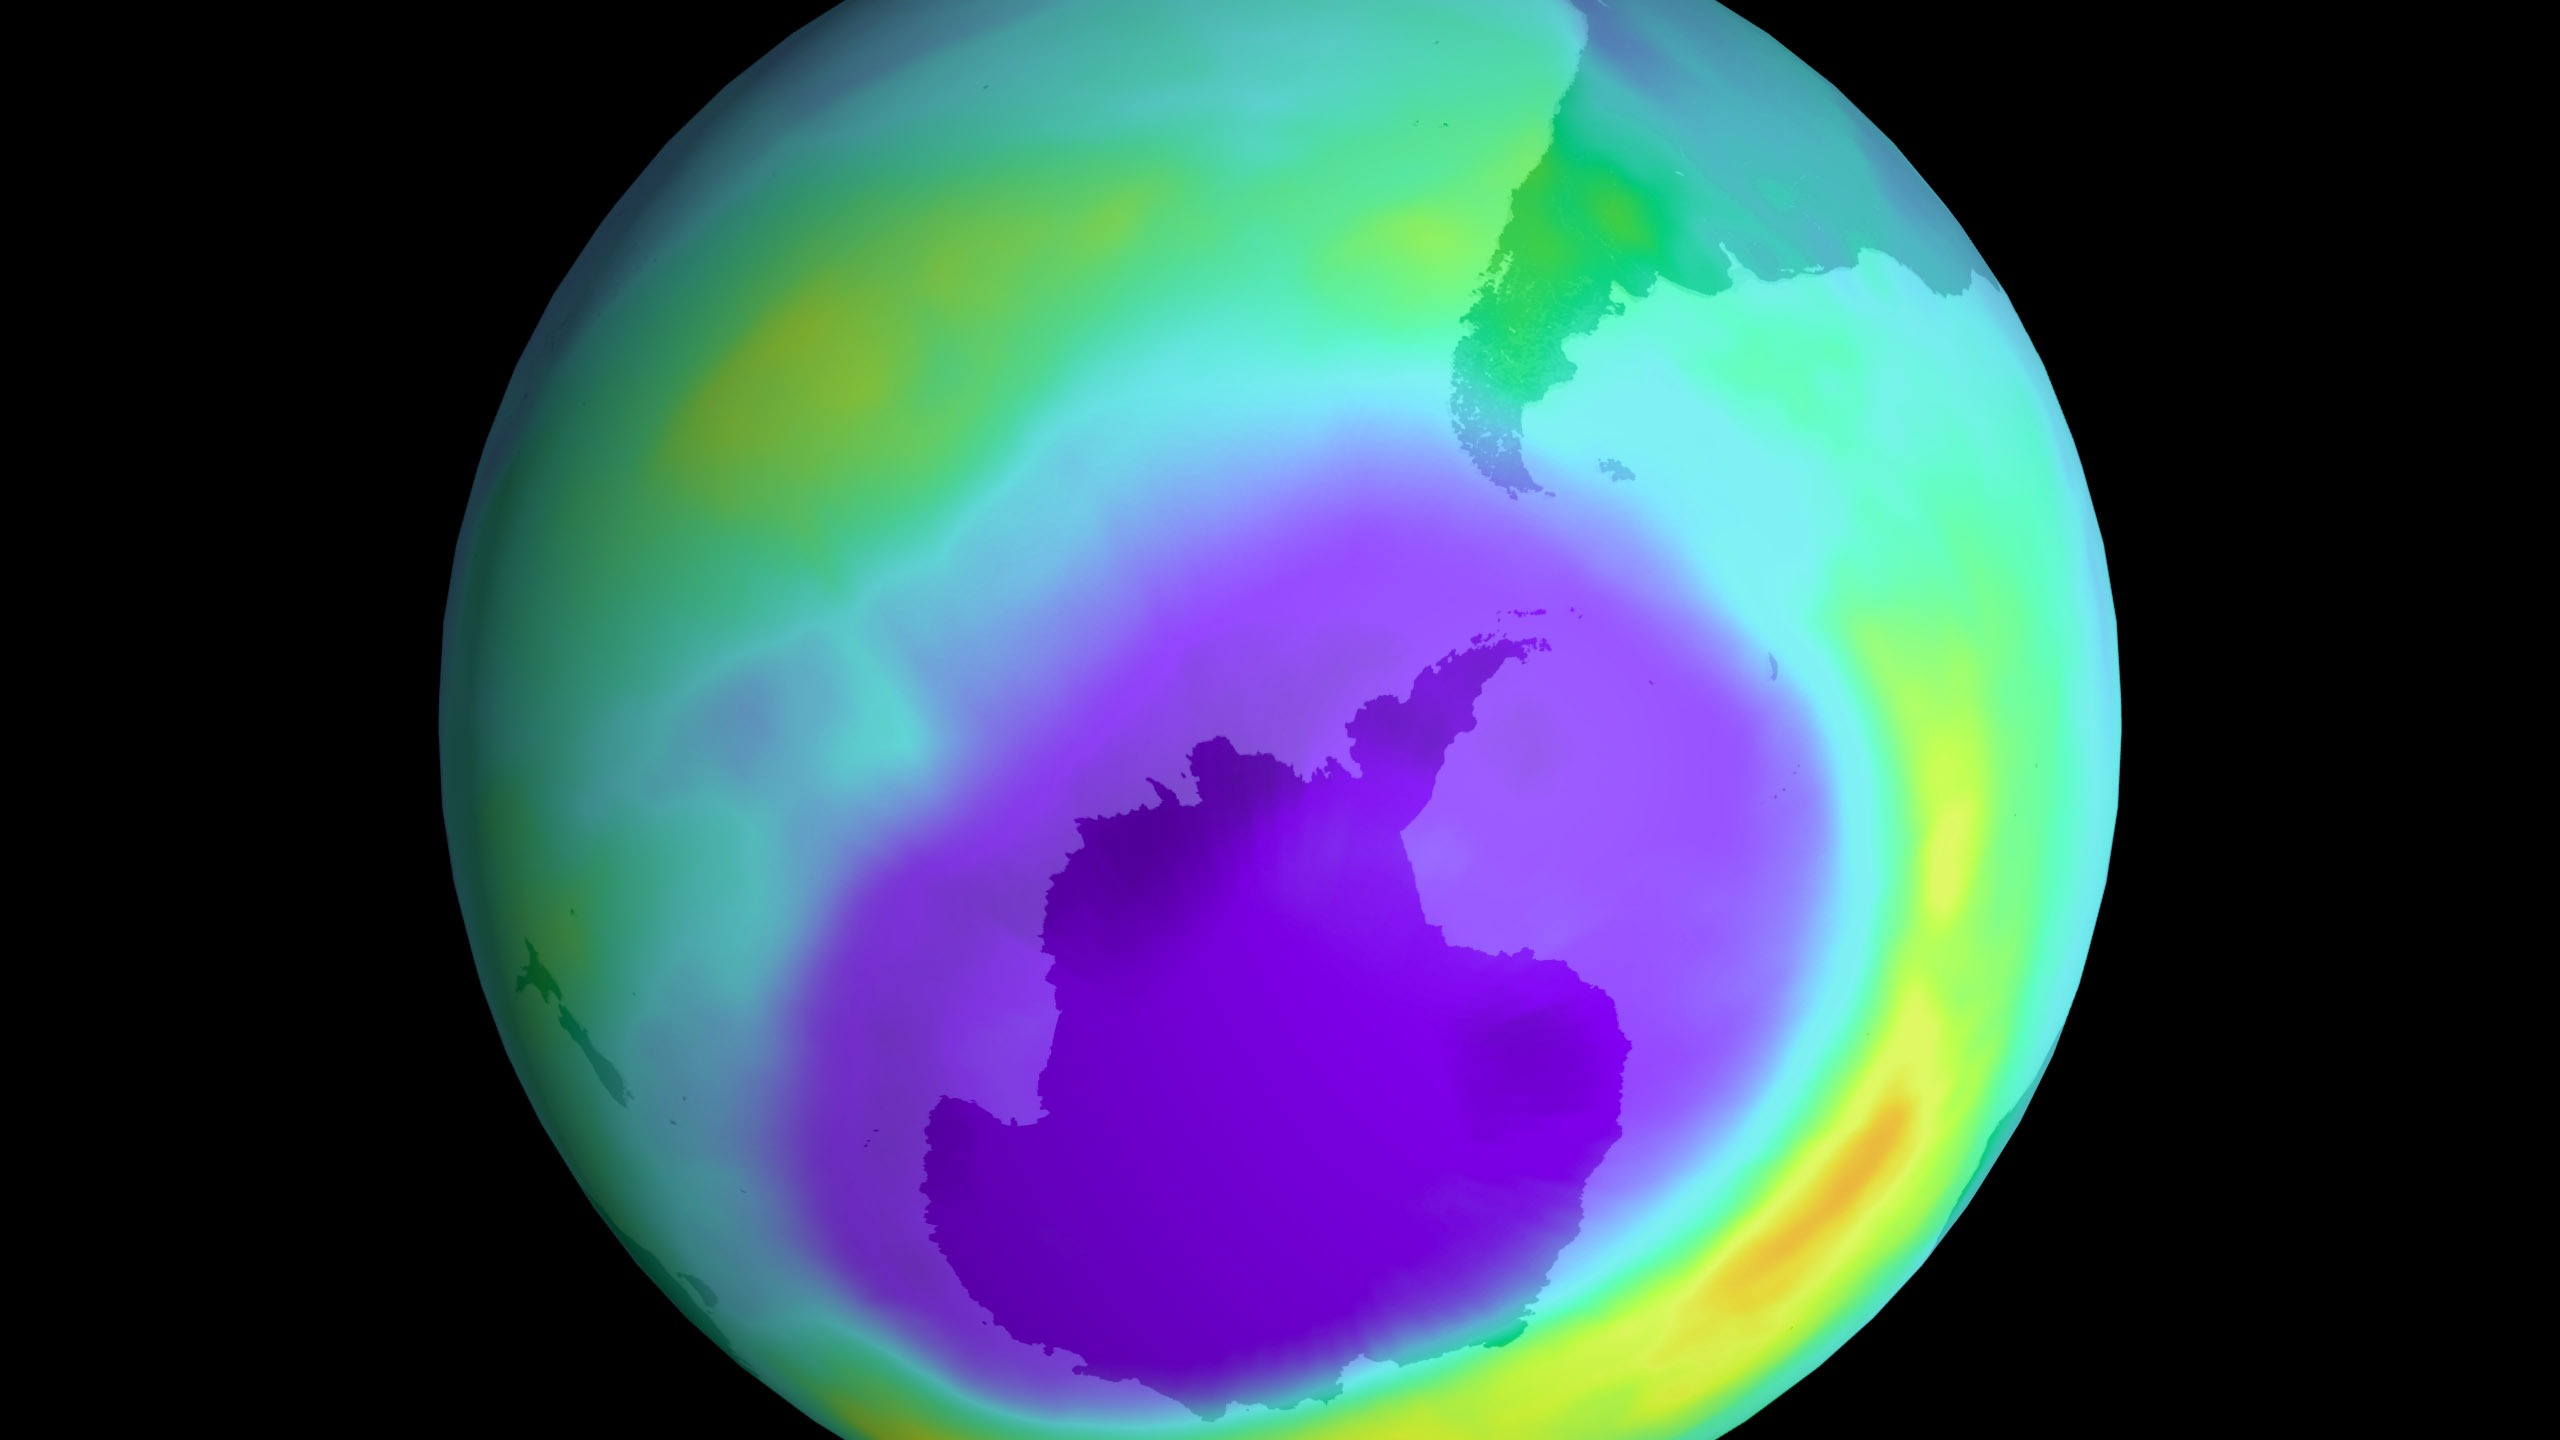 A 11.5 million square-mile hole in Earth's protective ozone layer over Antarctica in 2000. The area is approximately three times the size of the United States. (Photo by Newsmakers/Getty Images)